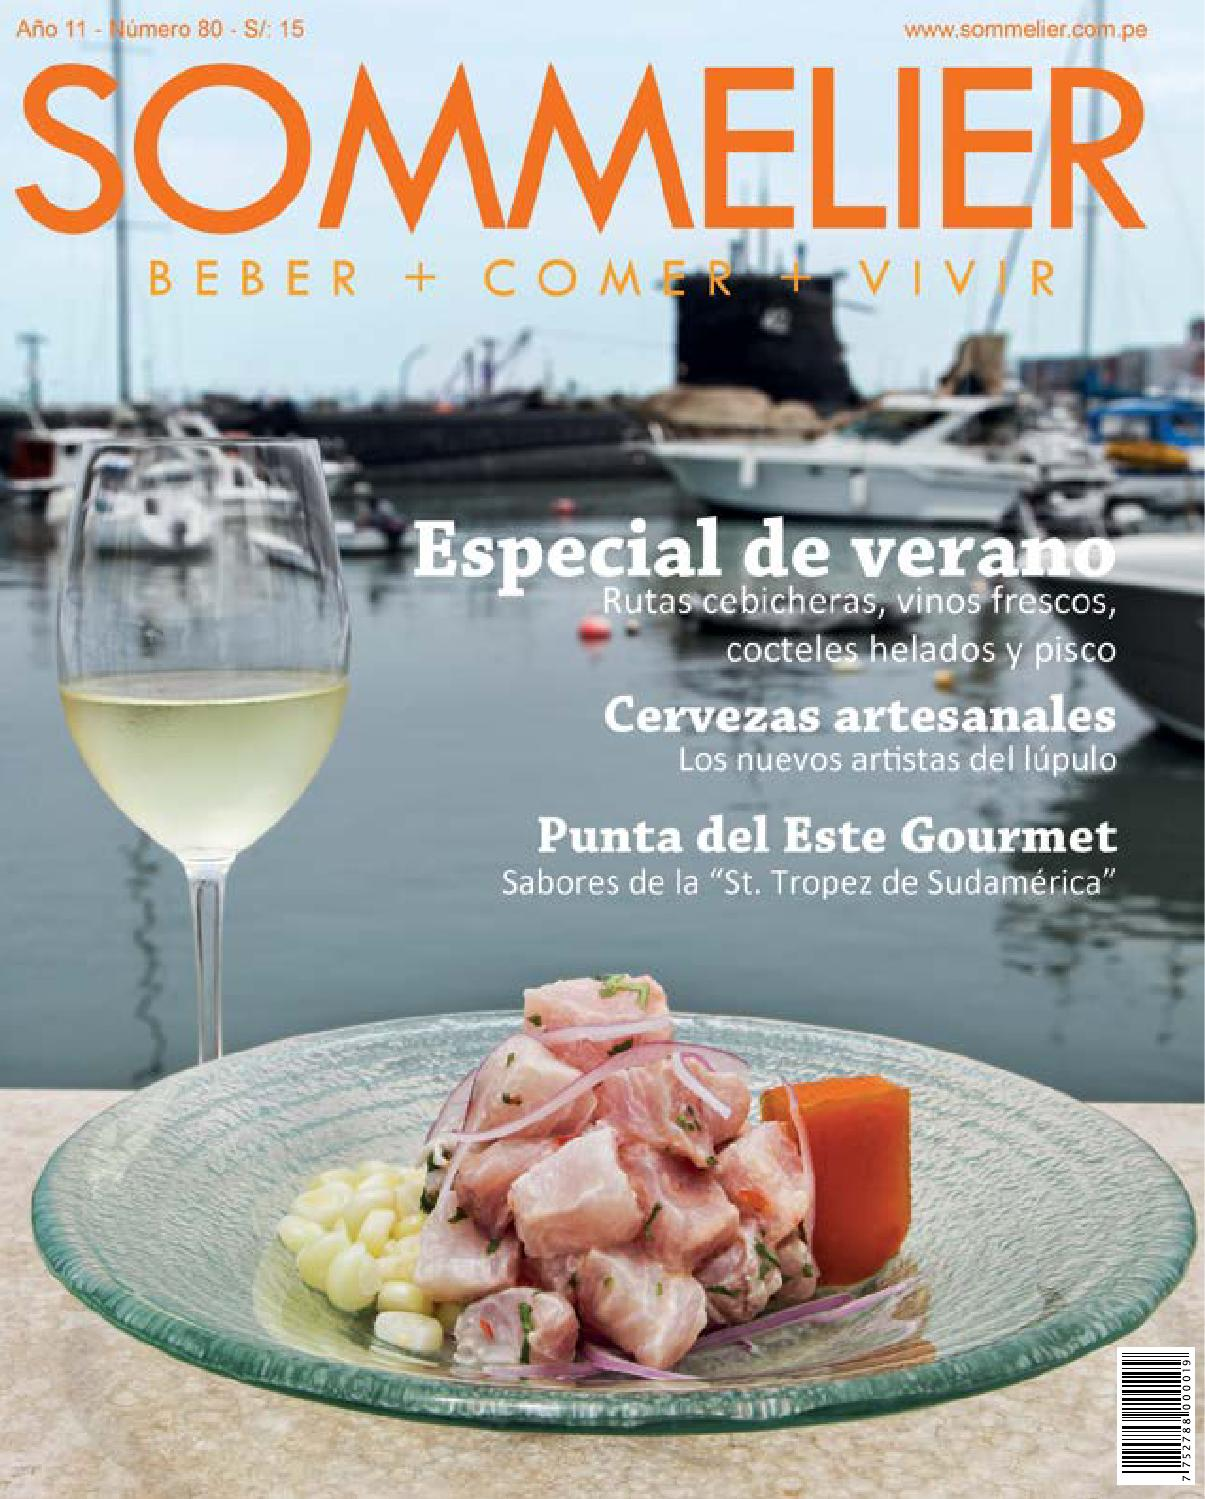 Sommelier edicion 83 by Revista Sommelier - issuu